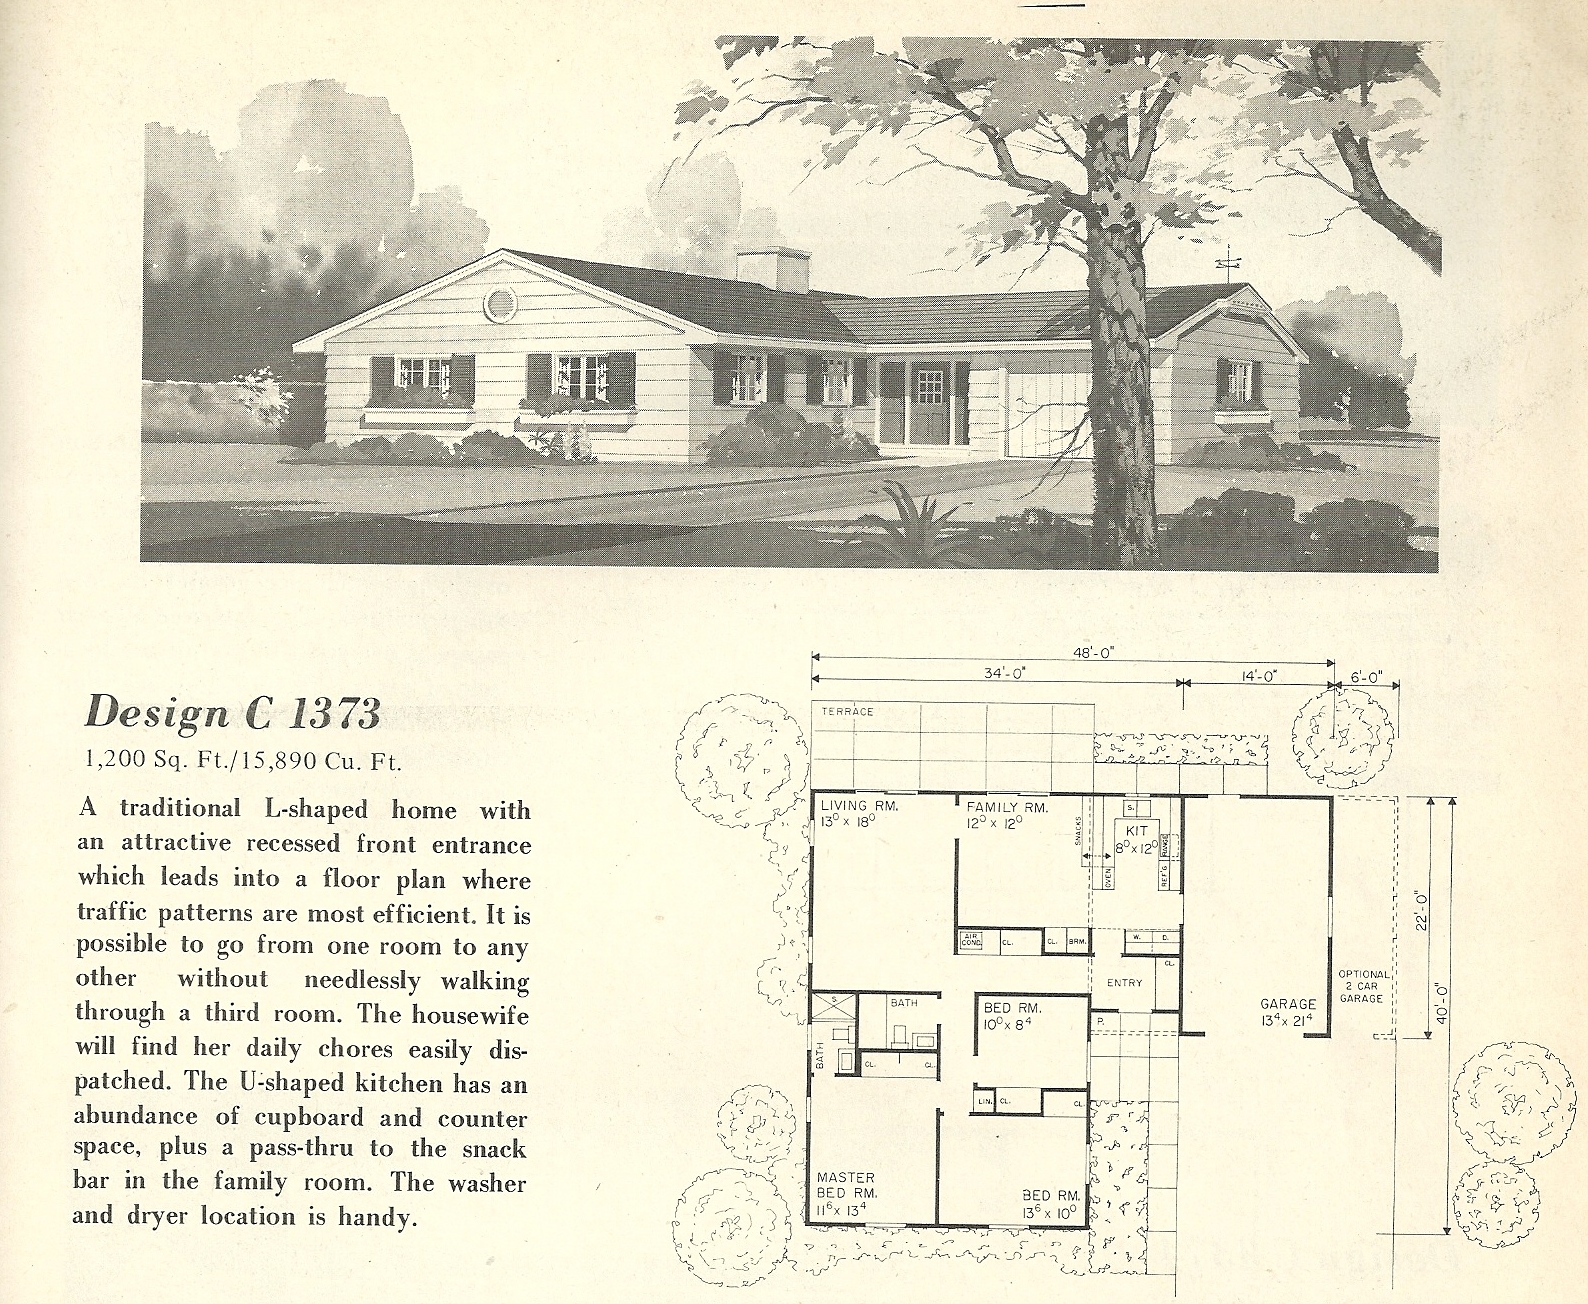 Vintage house plans 1373 antique alter ego - Retro home design ...